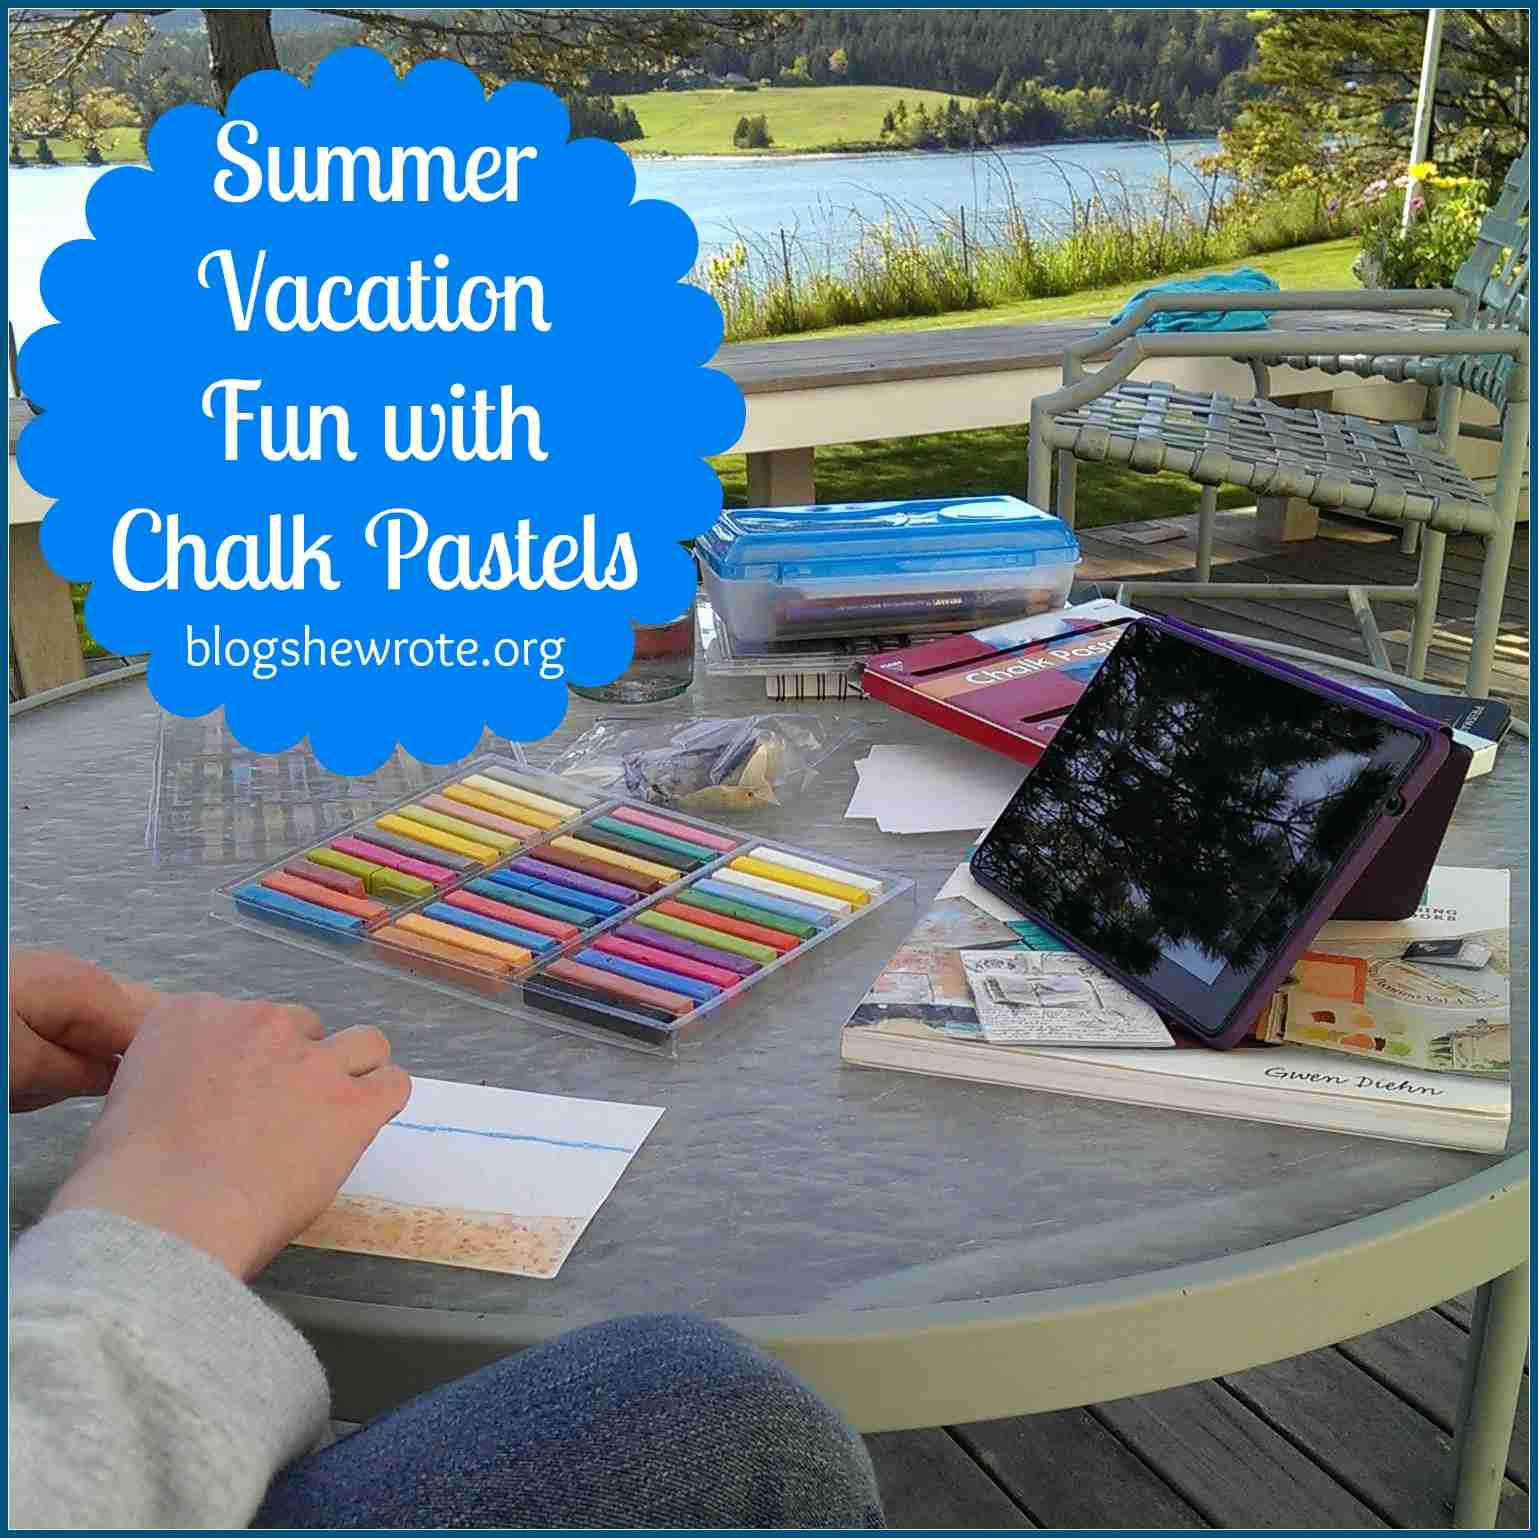 Blog, She Wrote: Summer Vacation Fun with Chalk Pastels